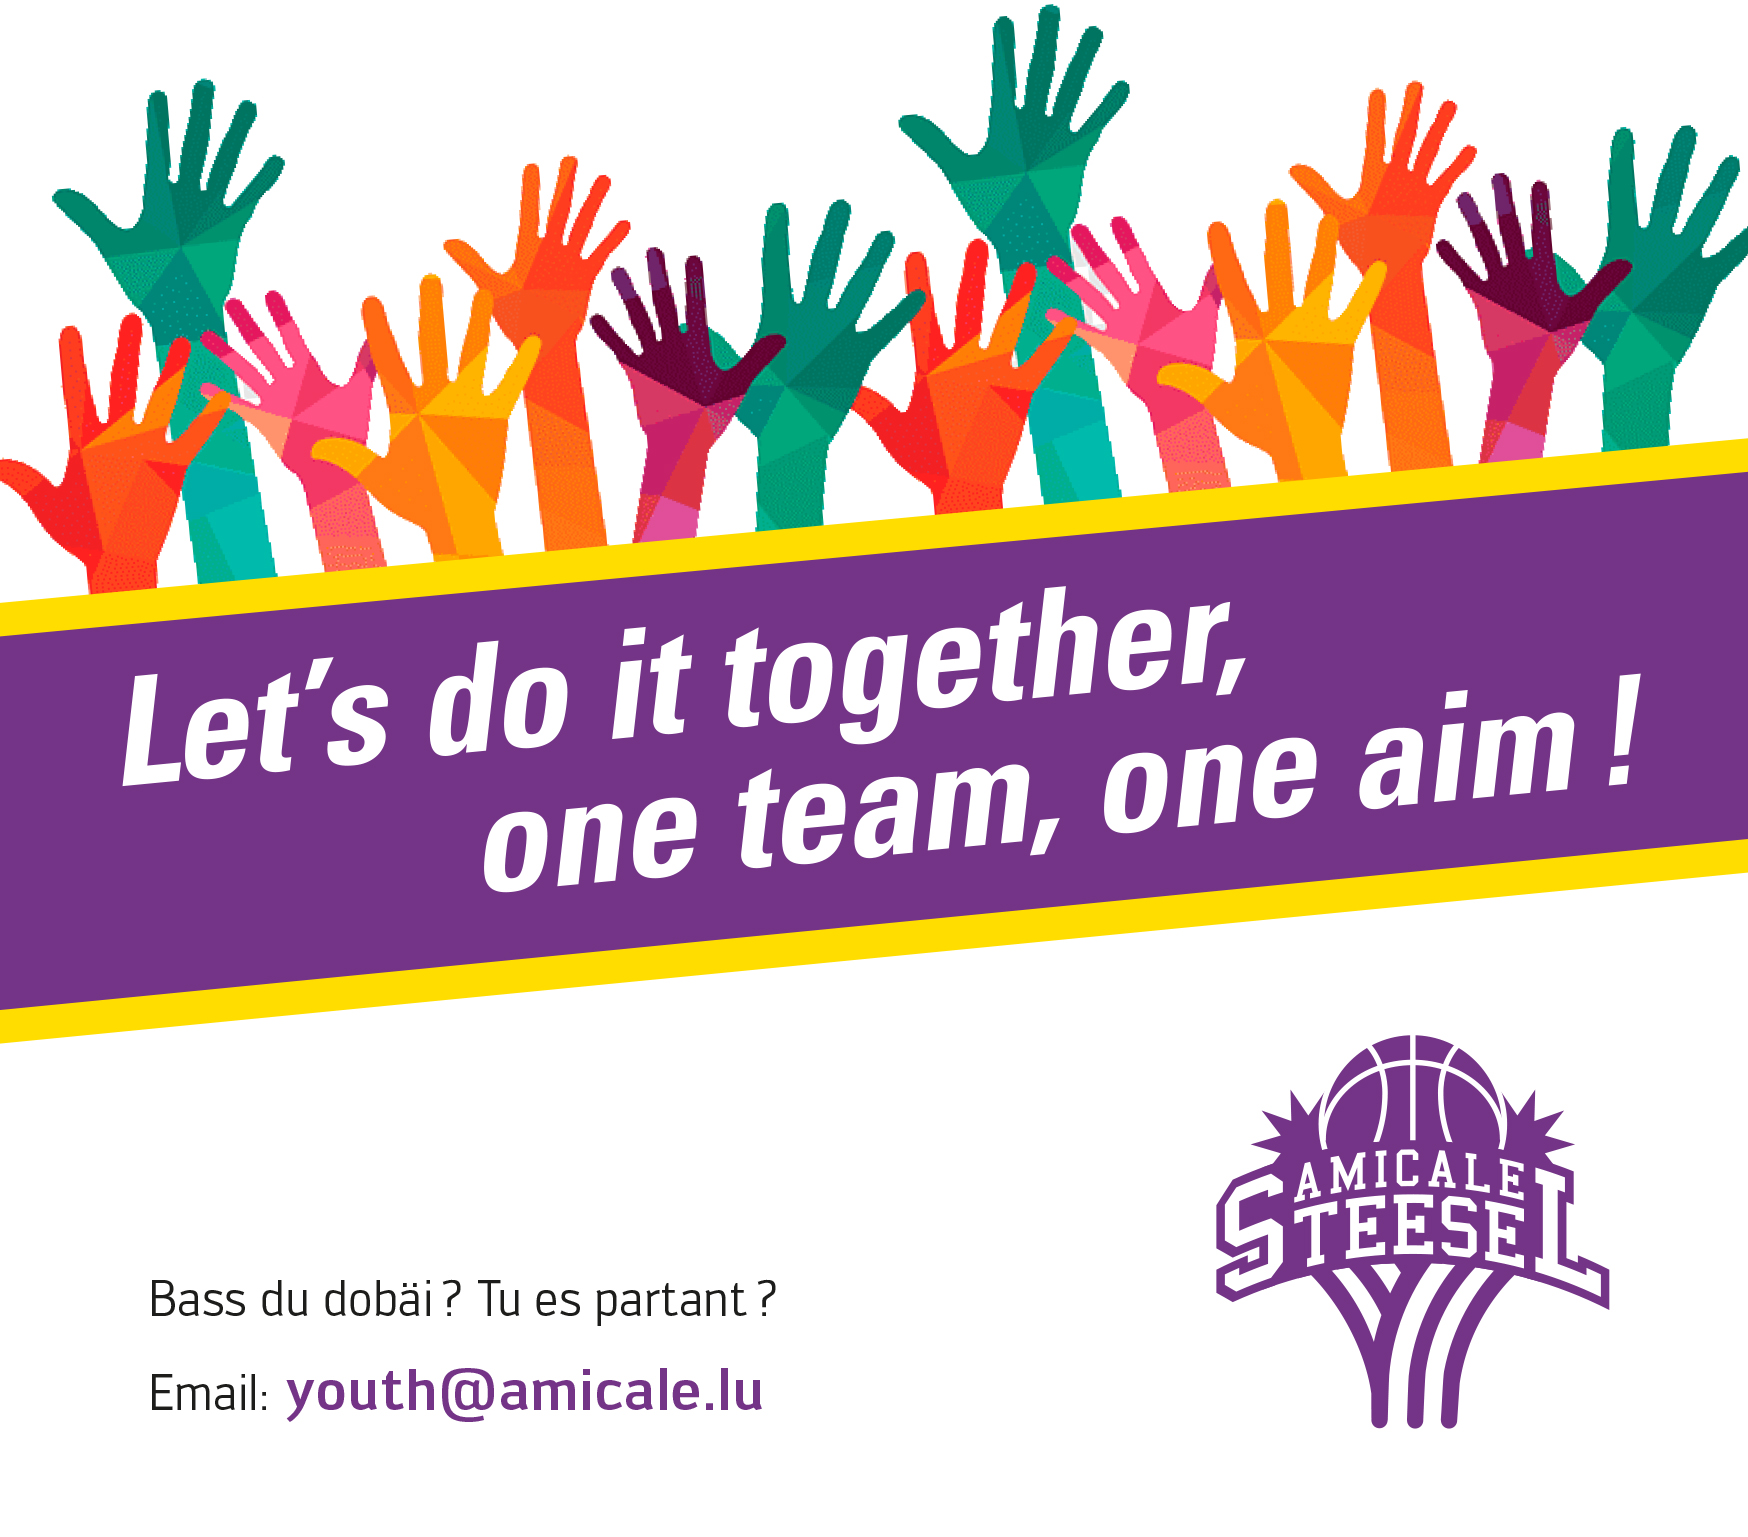 """Featured image for """"Let's do it together, one team, one aim!"""""""